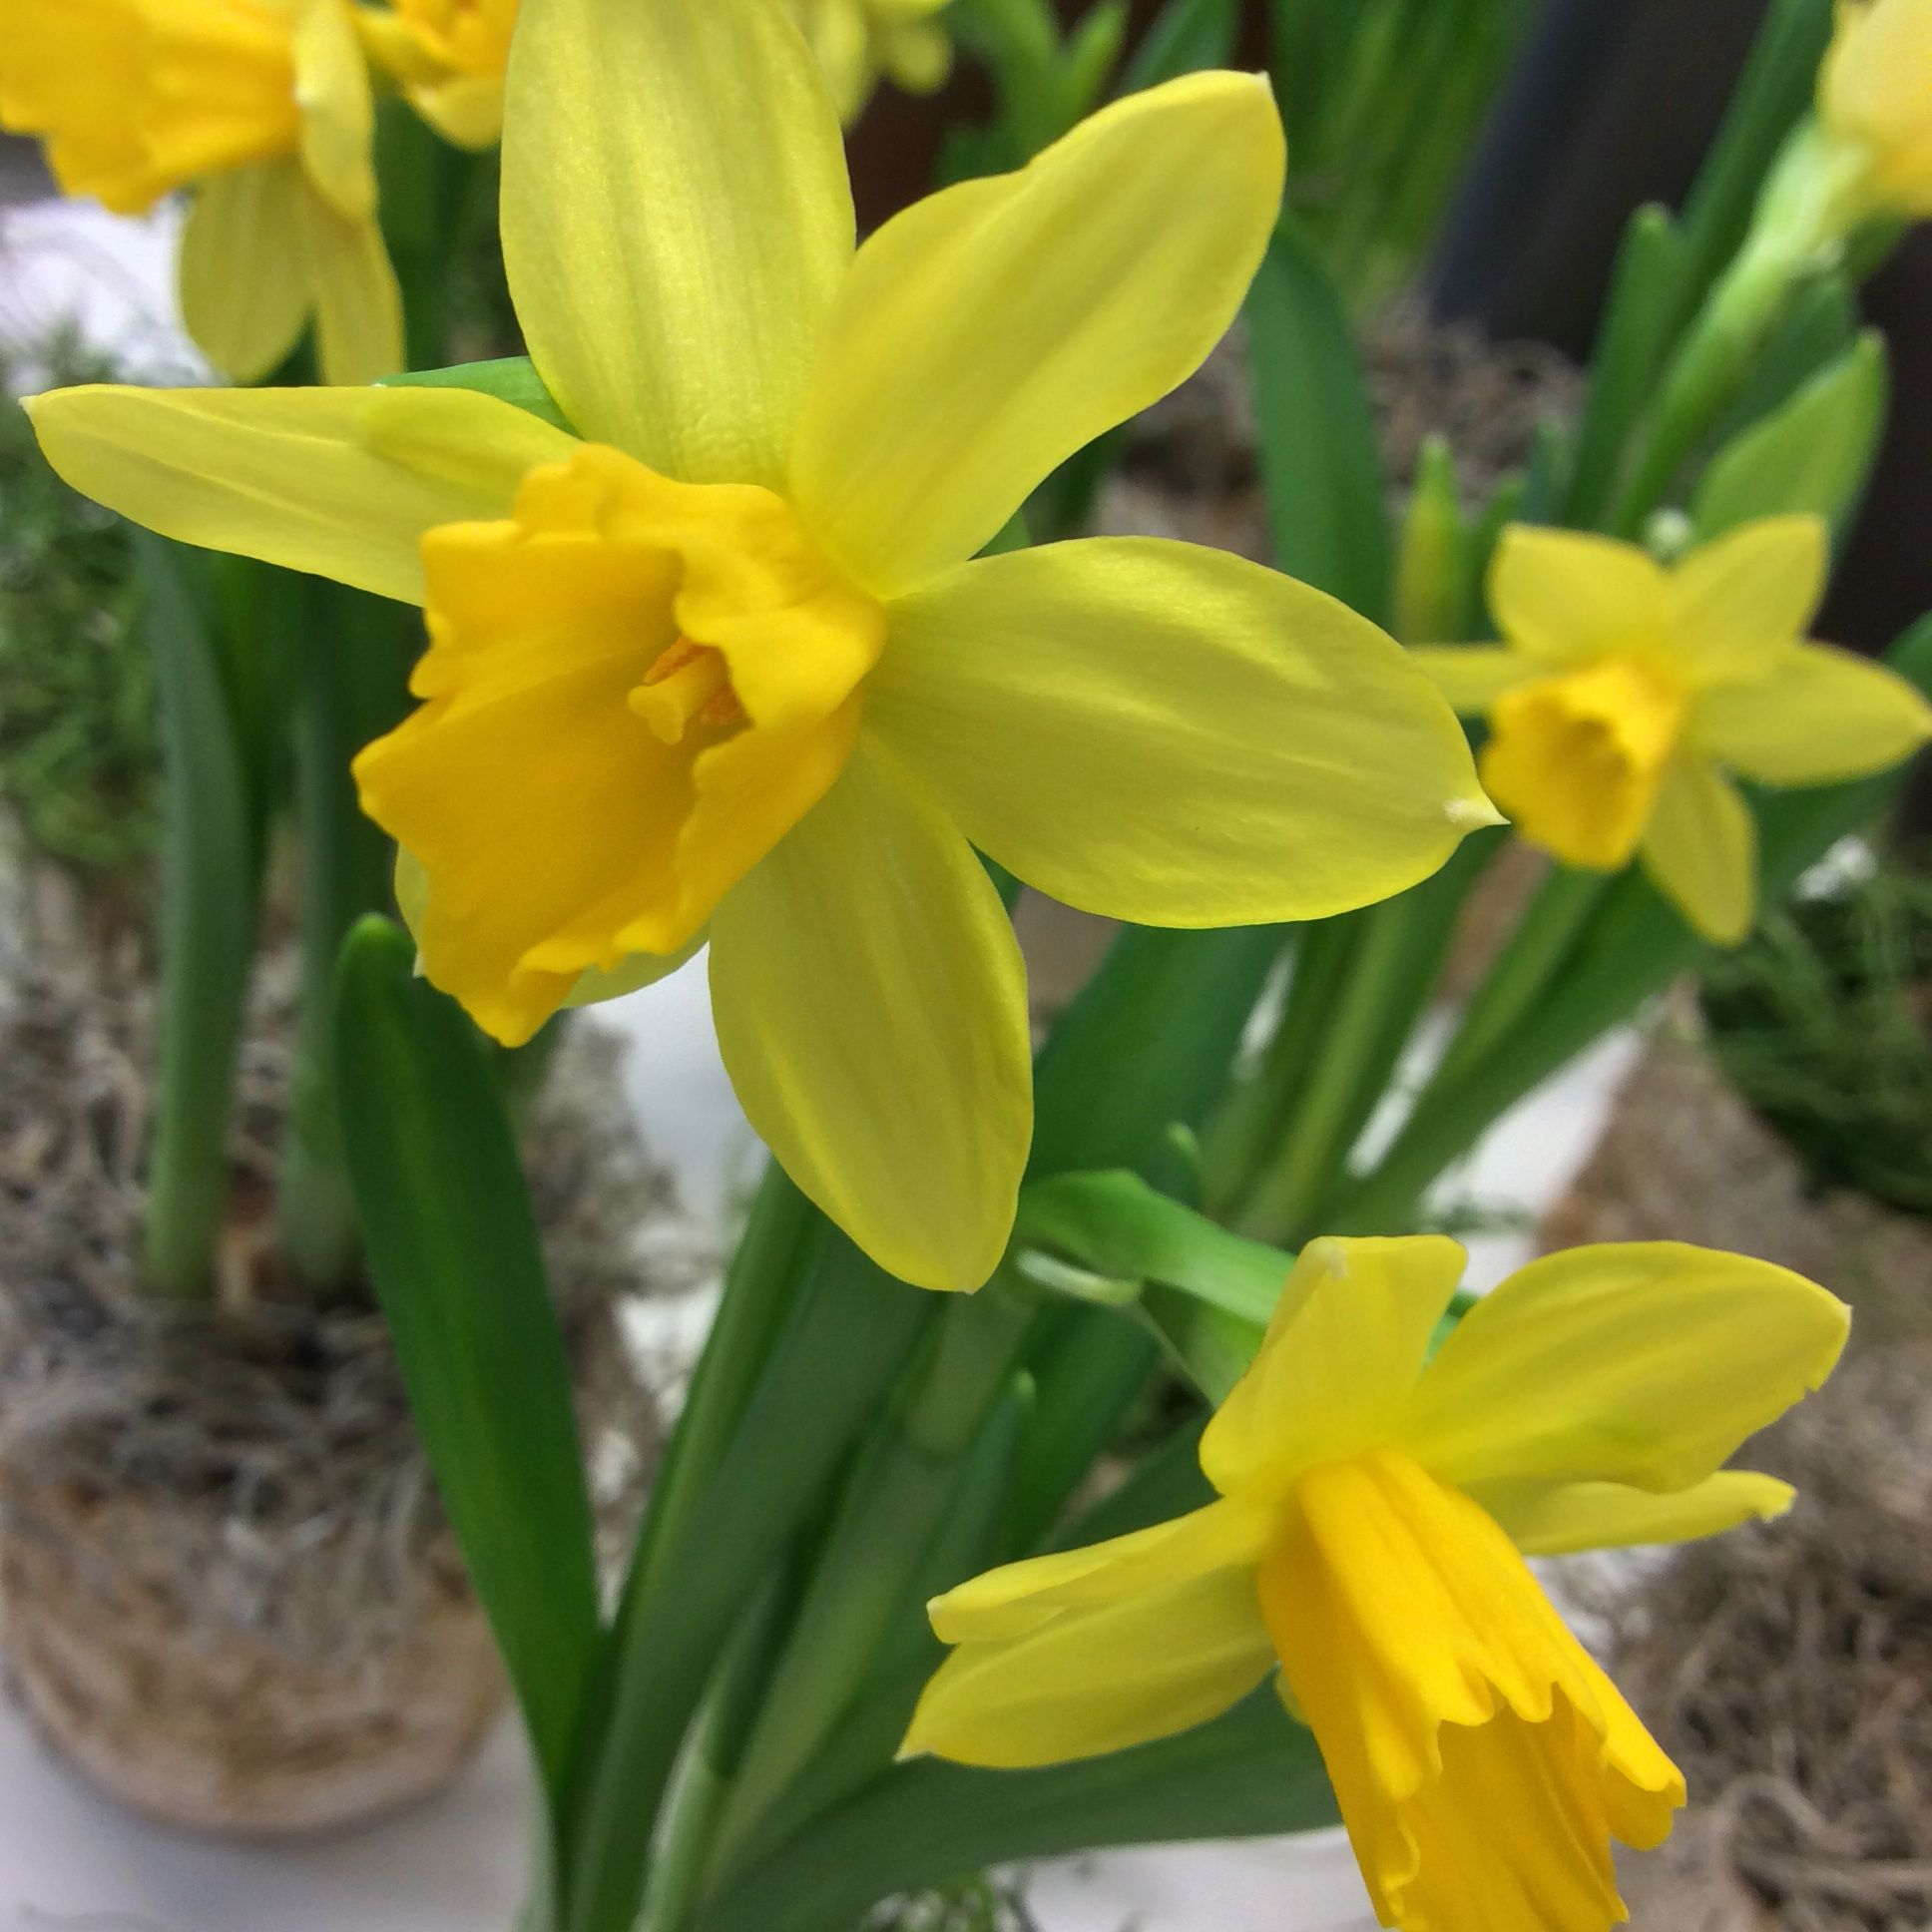 Miniature daffodils given a contemporary twist by The Tayler Studios by pairing with Birch and Moss